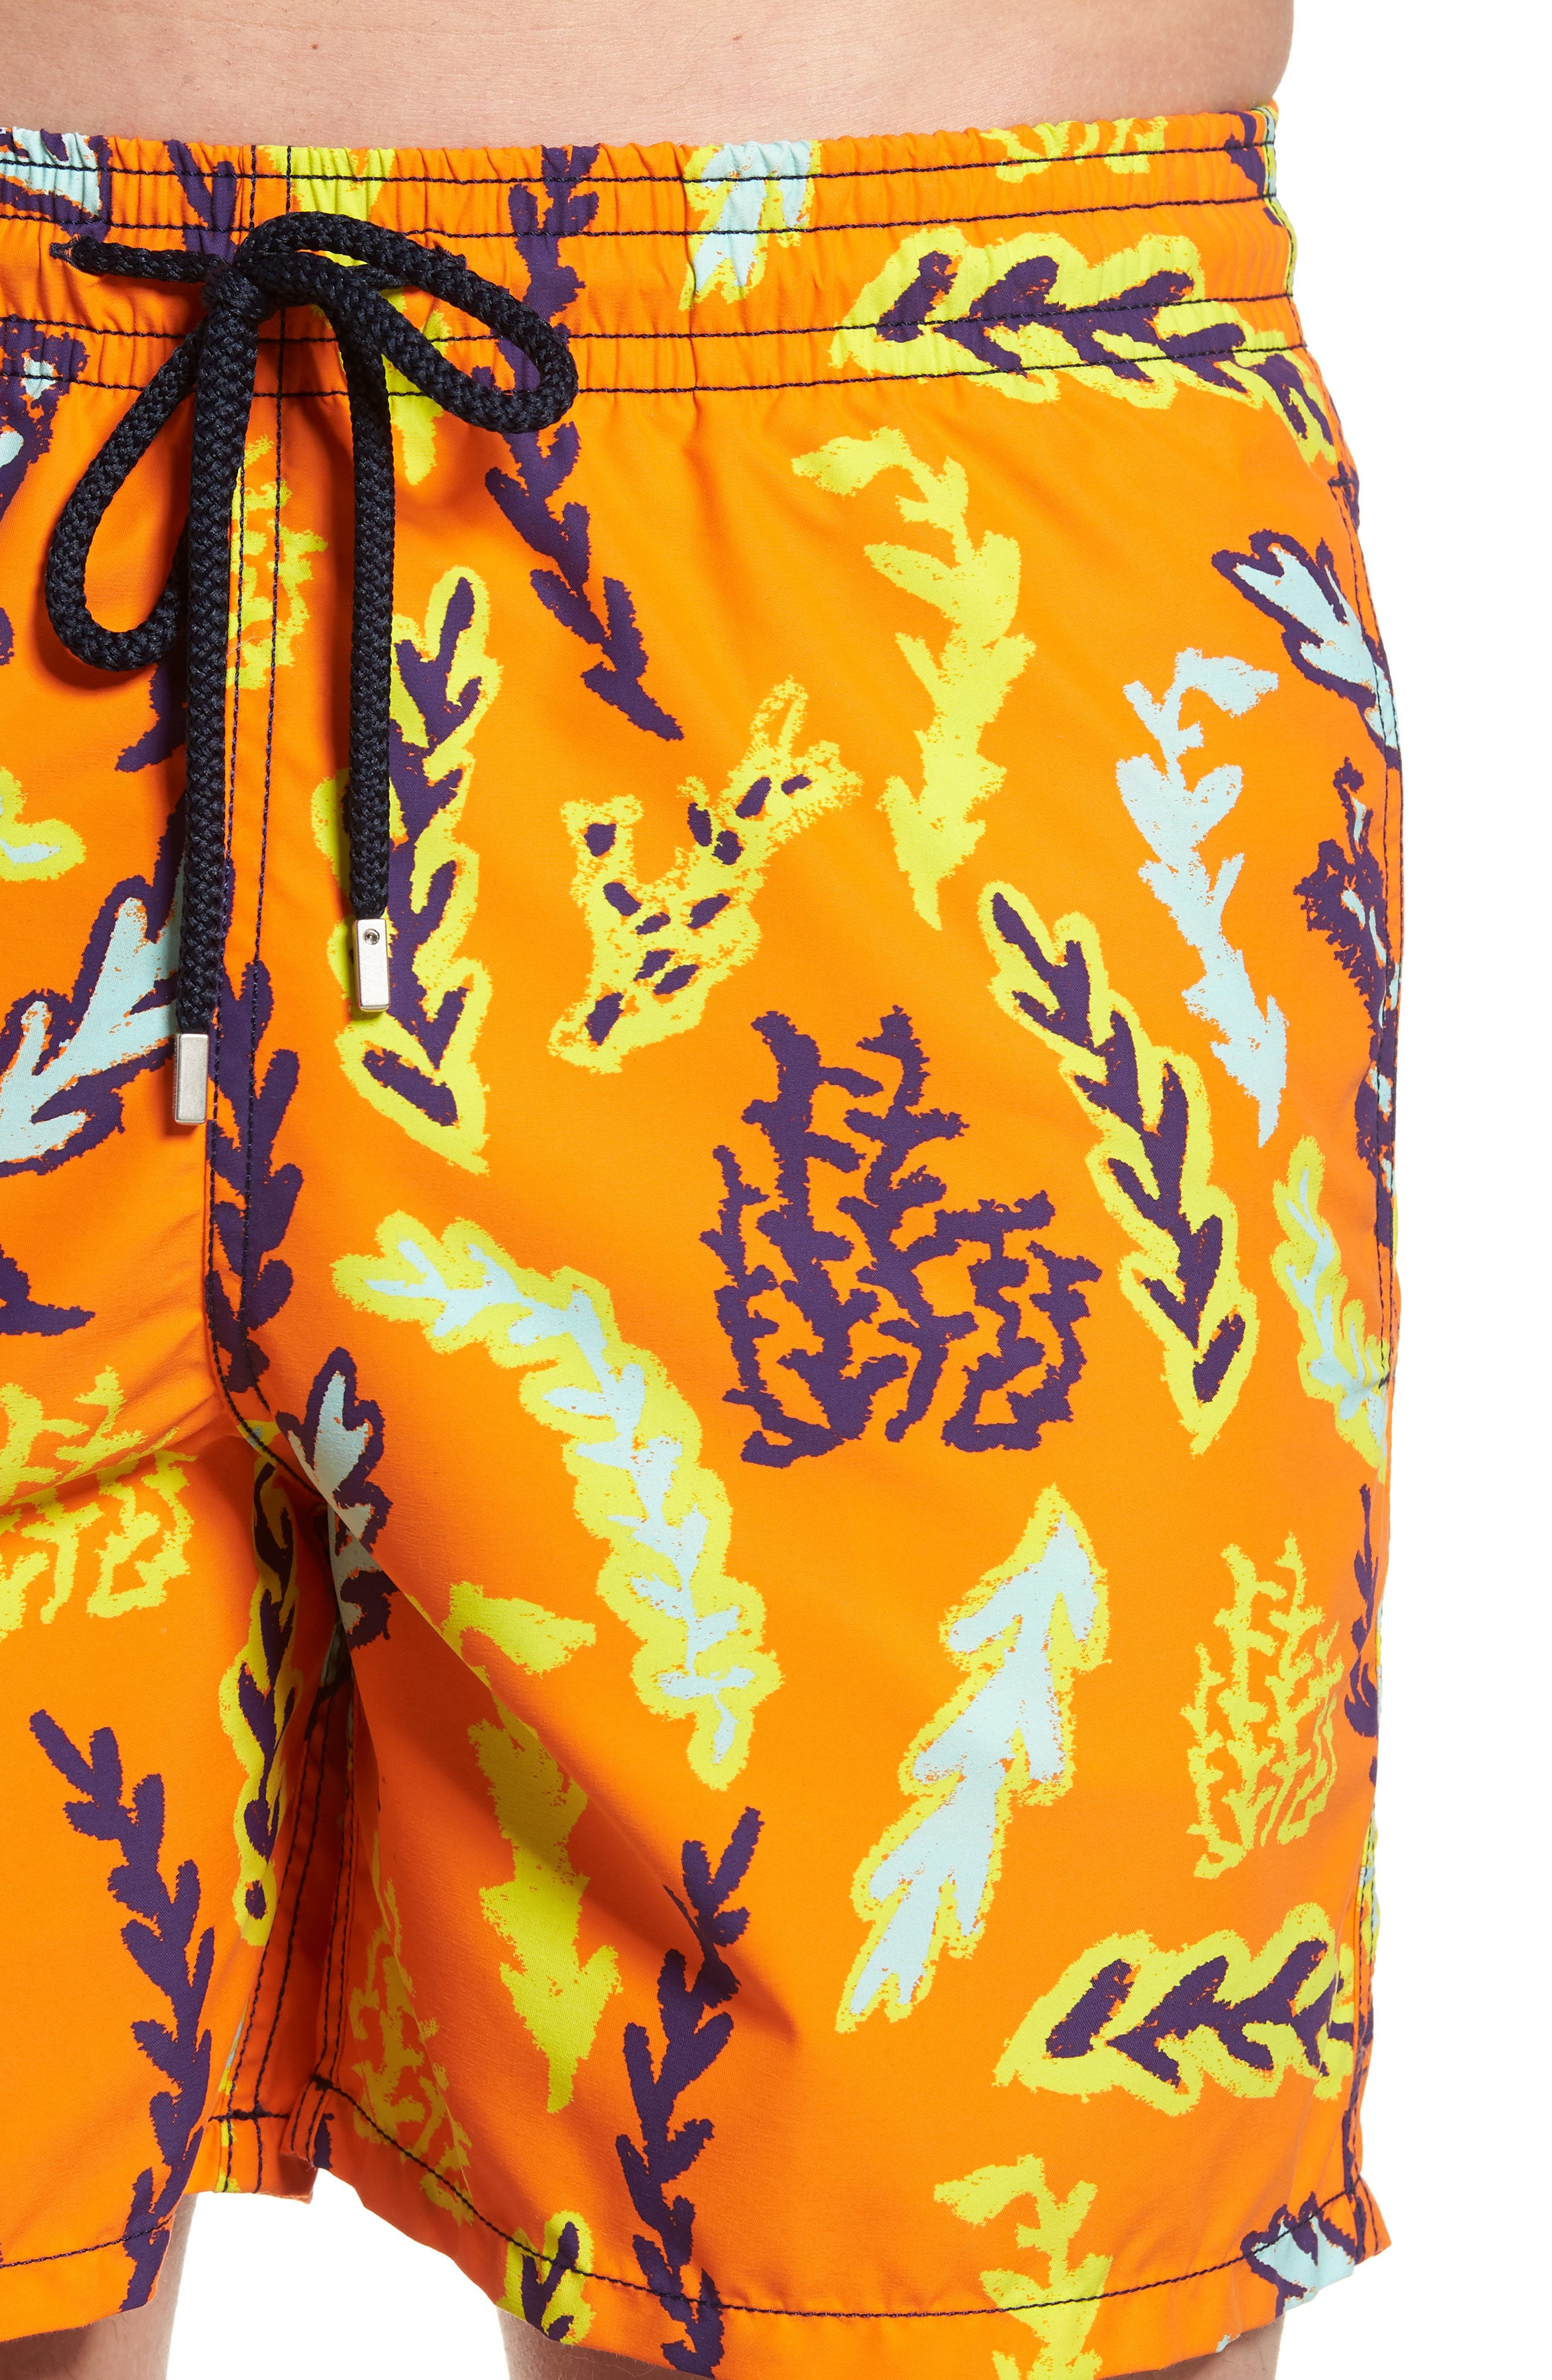 Solar Seaweed Print Swim Trunks,                             Alternate thumbnail 5, color,                             812